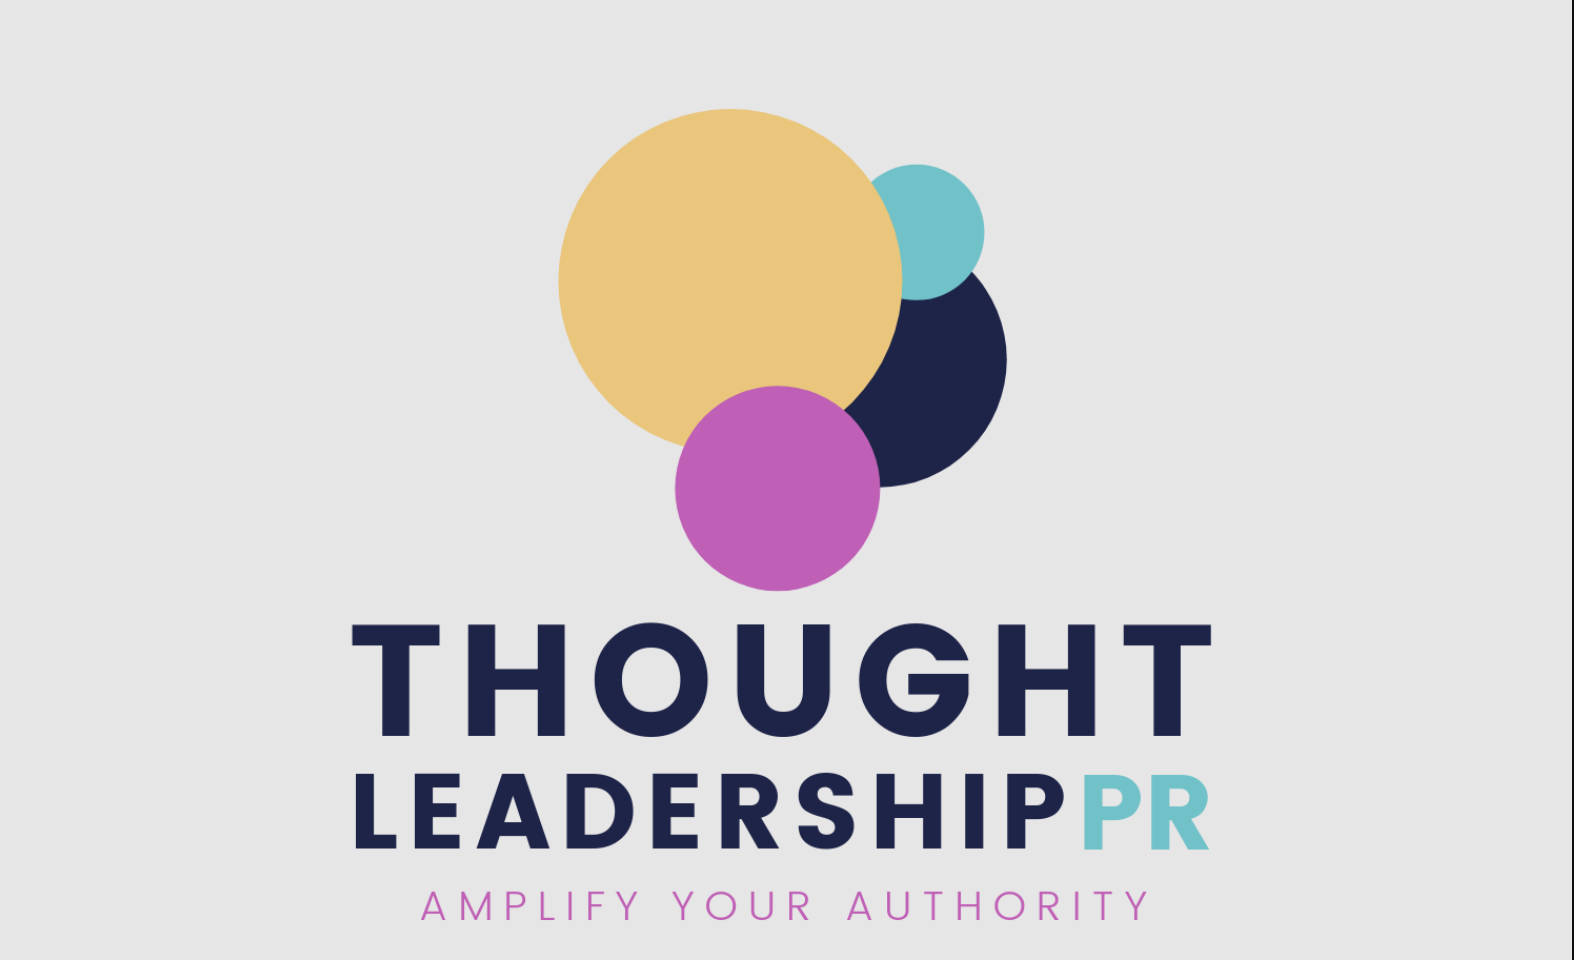 Thought Leadership PR